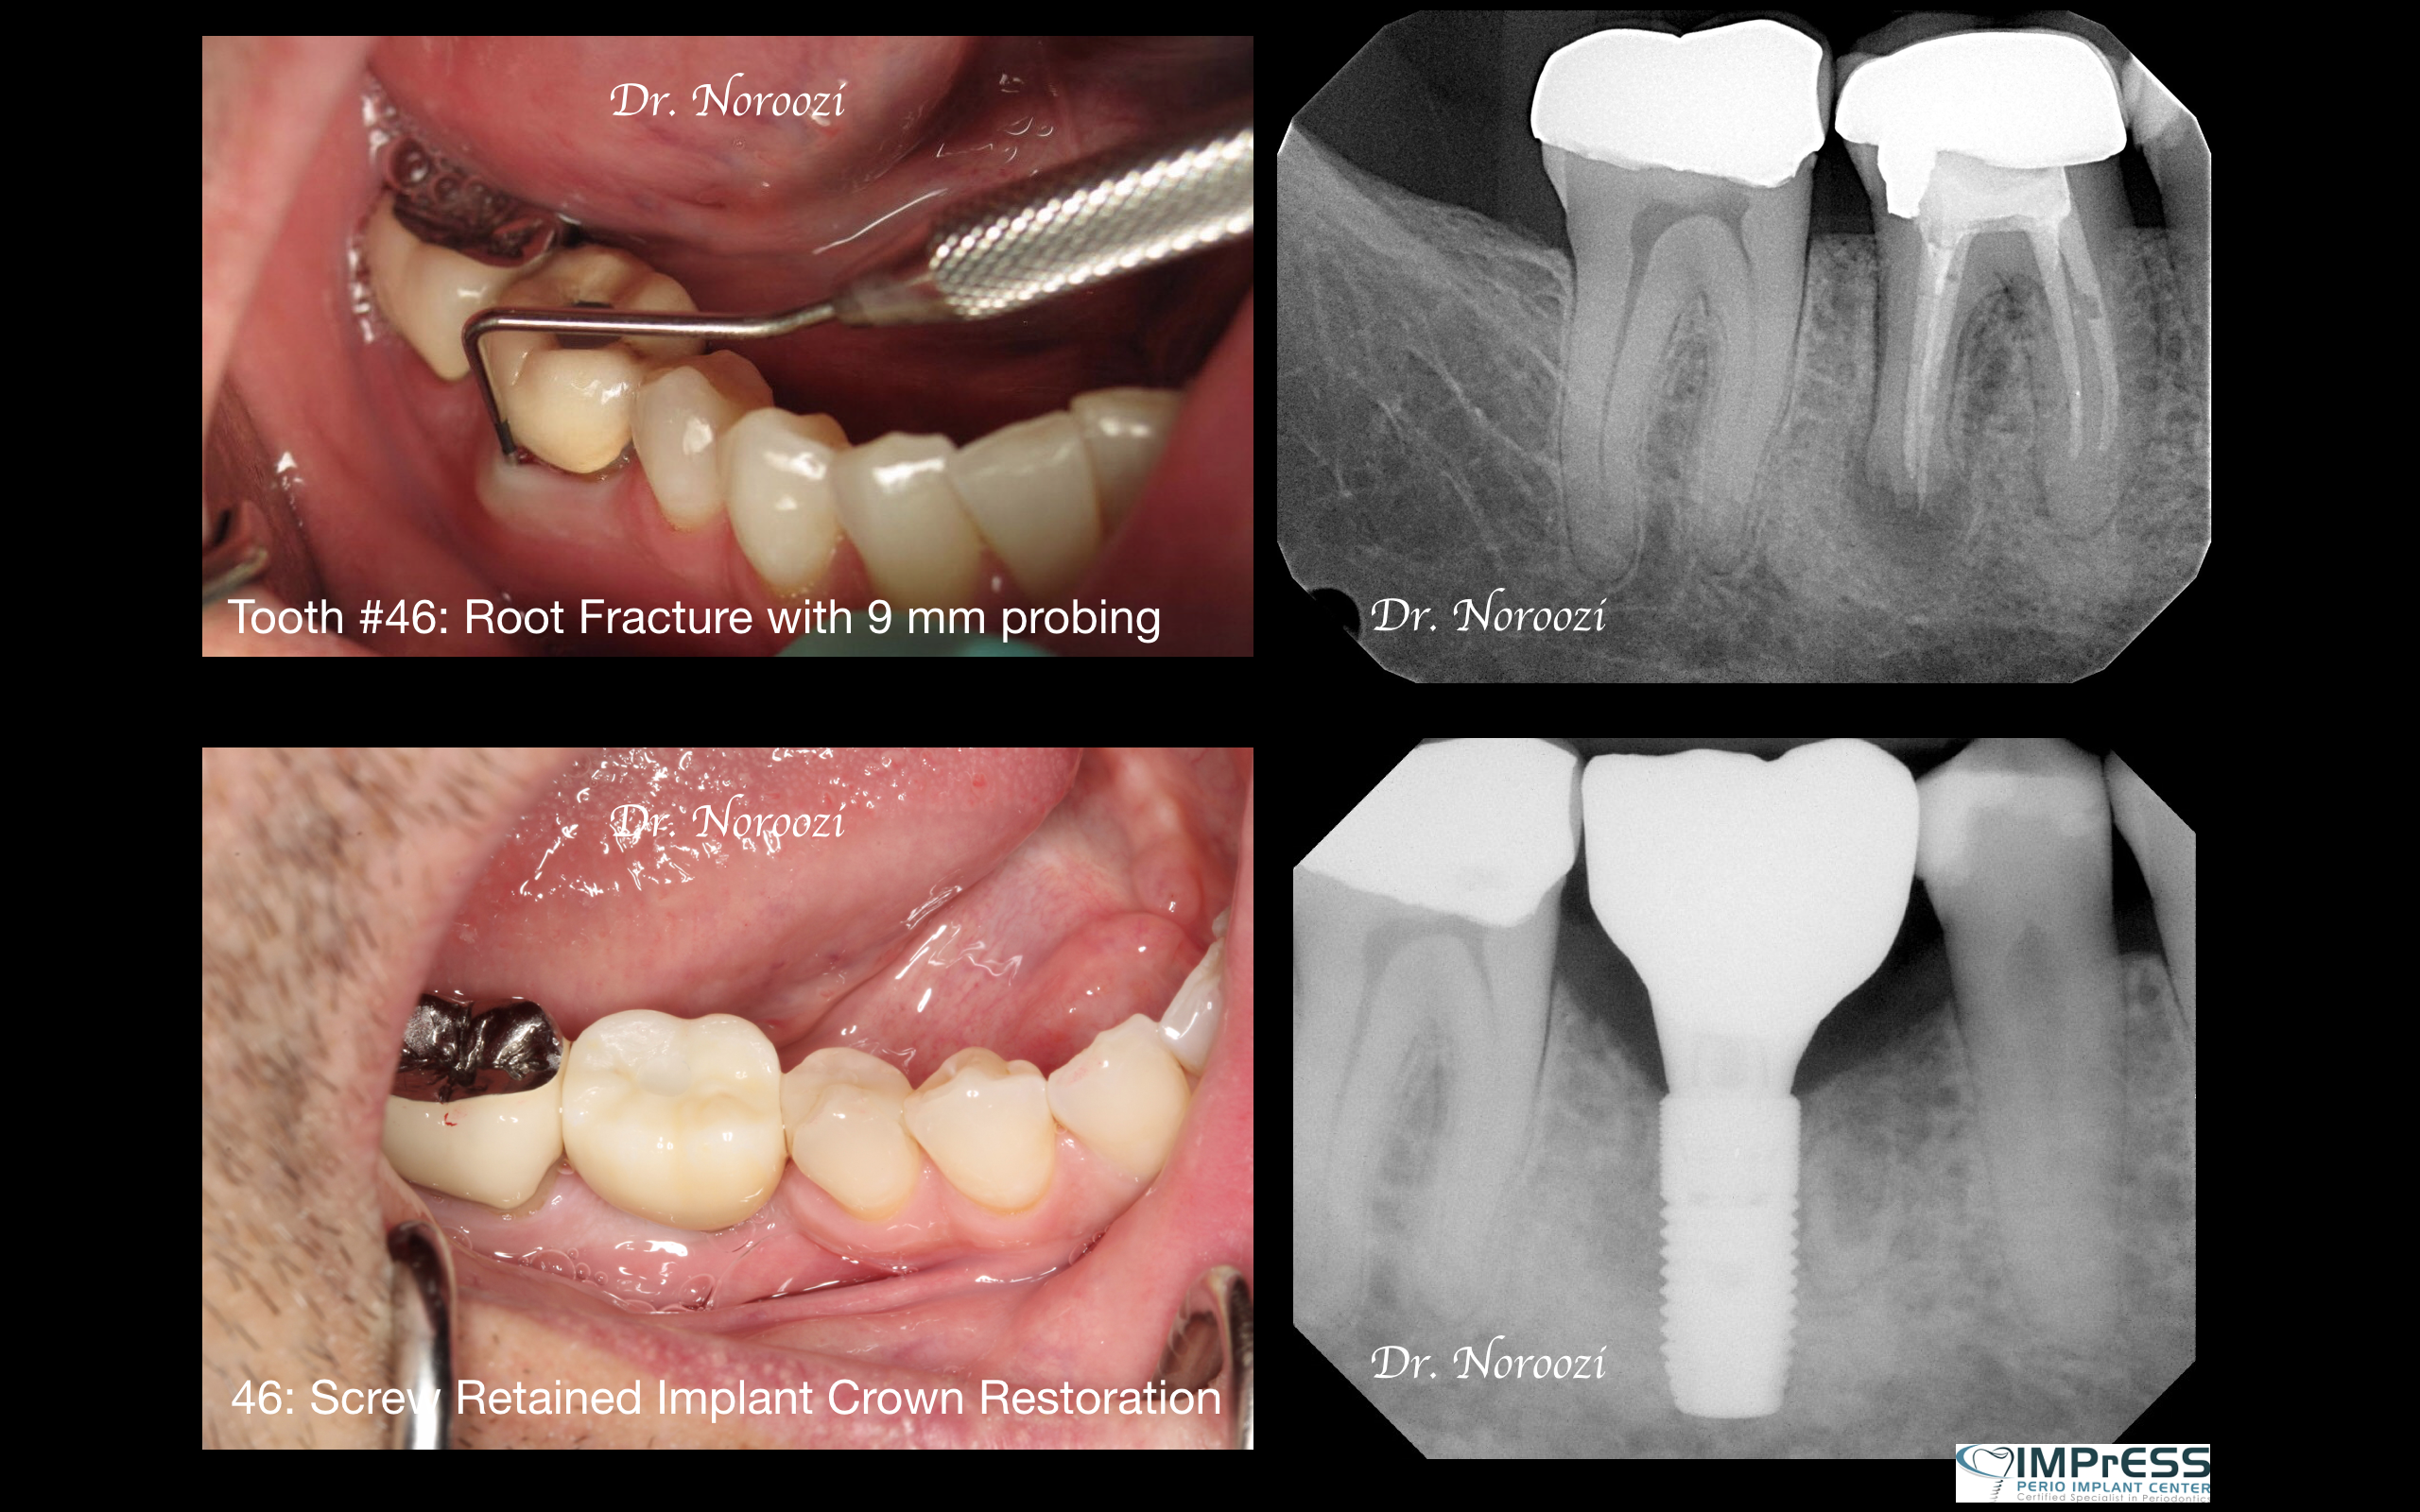 Dental Implant Centre Vancouver Periodontist Dr. Noroozi IMPrESS Perio Implant Centre